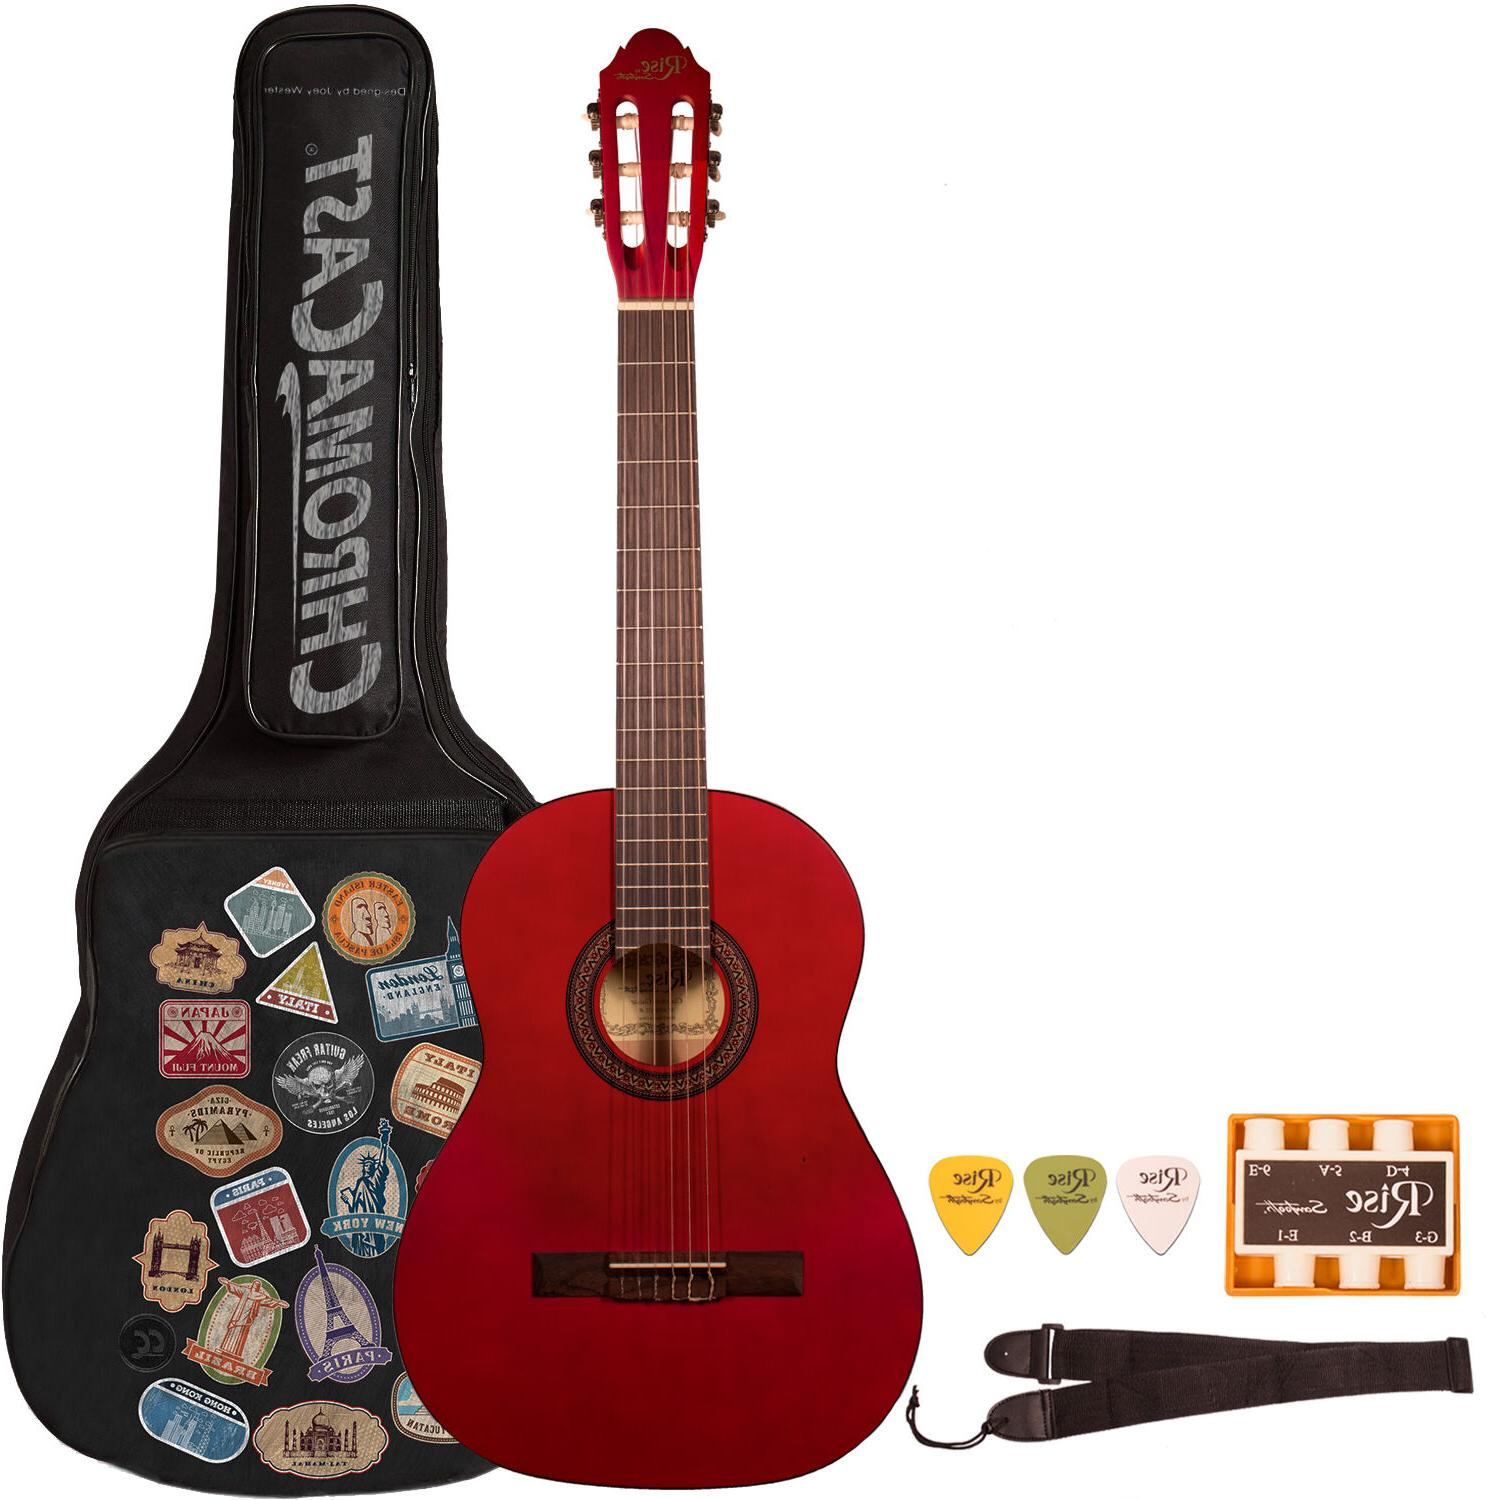 Rise by Sawtooth Beginner Acoustic Guitar with Accessories